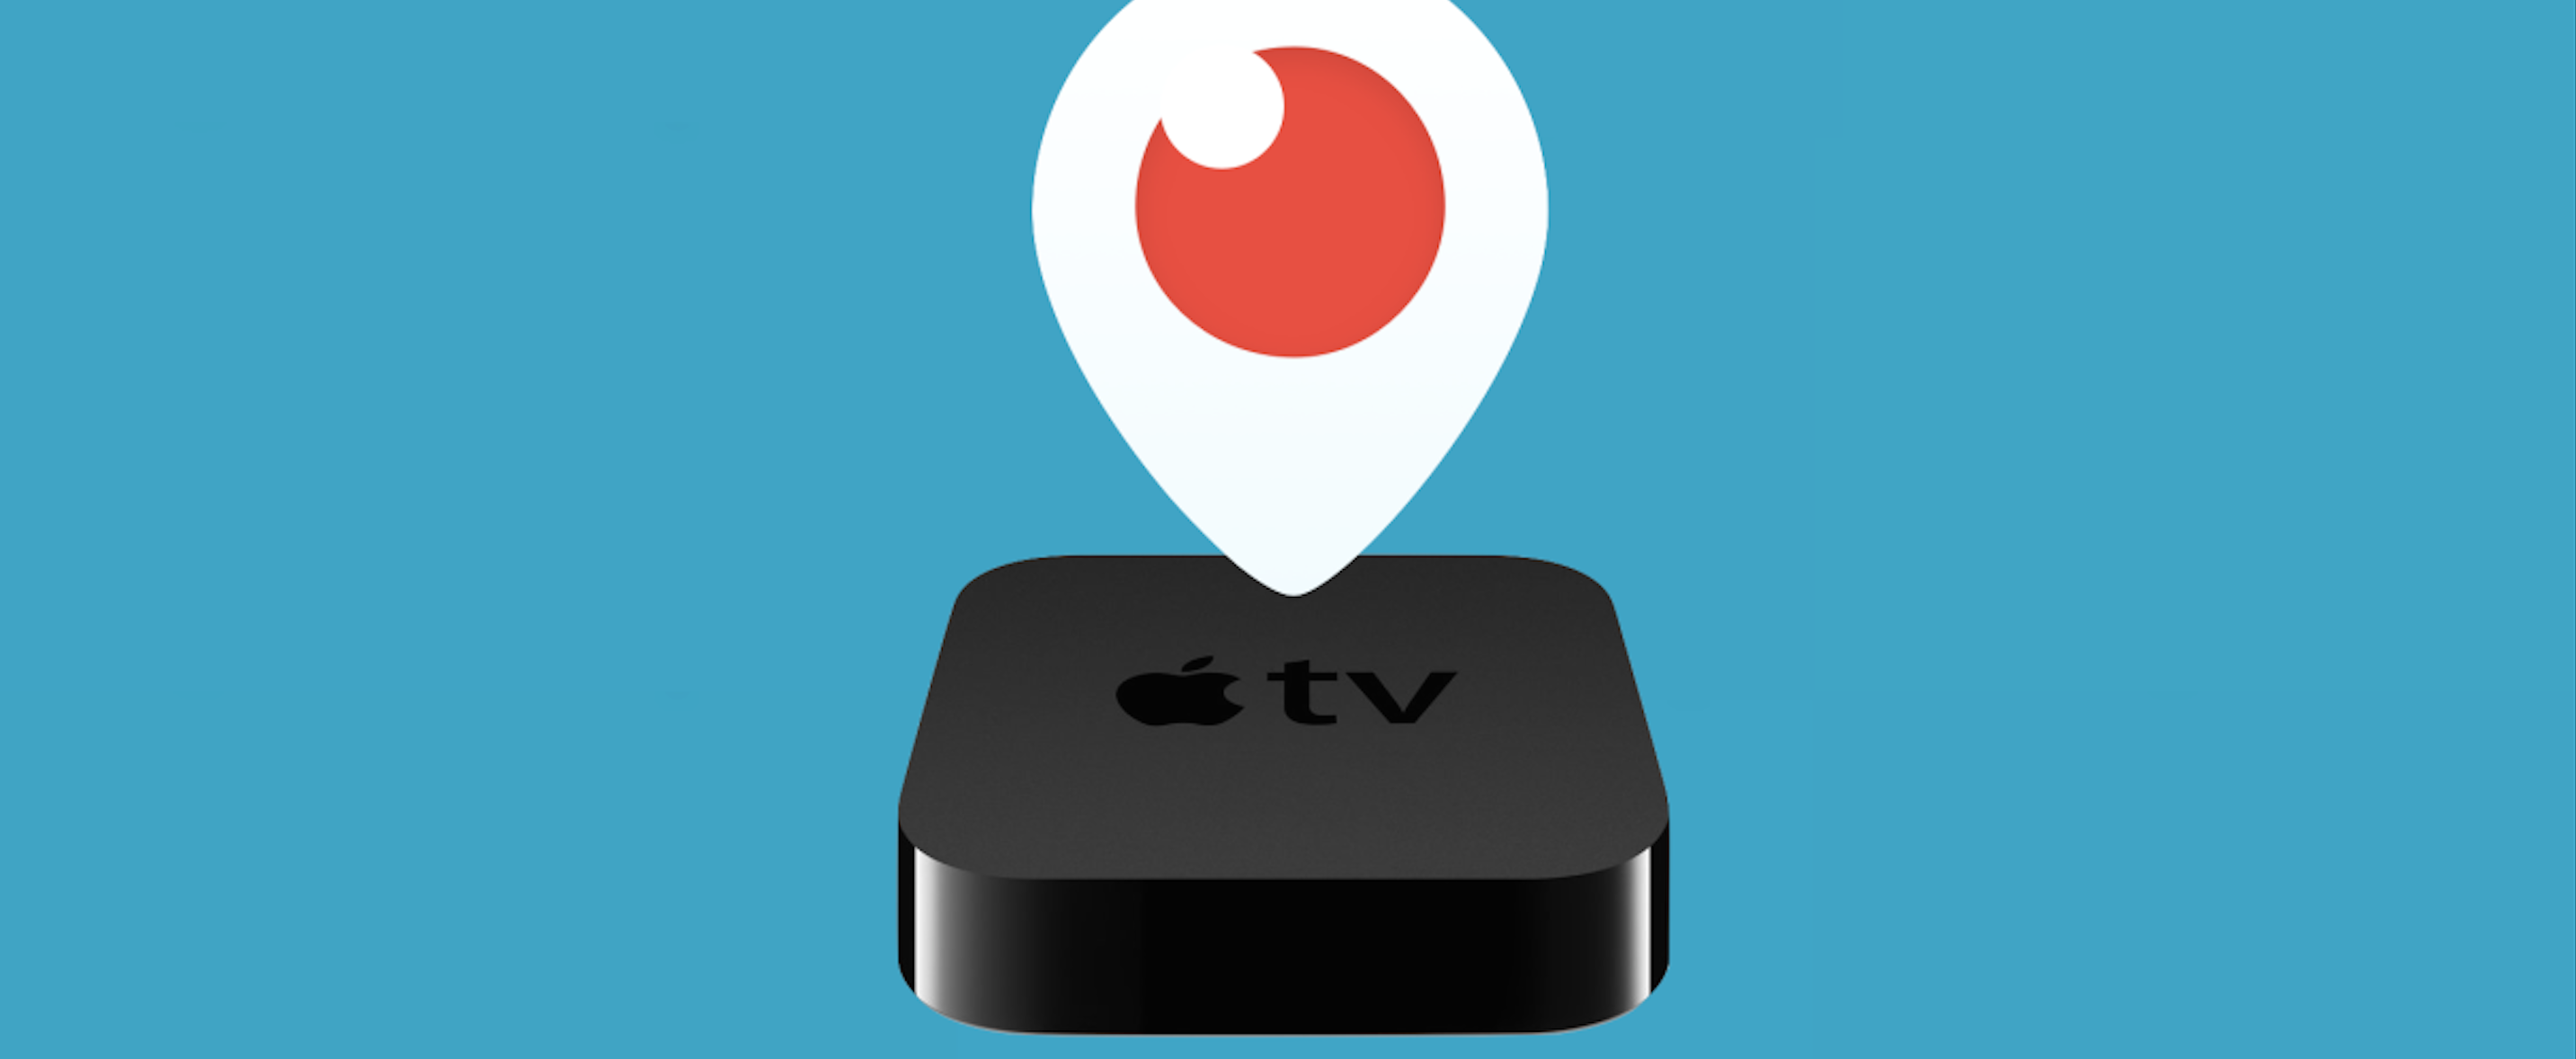 Twitter's Periscope Is Coming To An Apple TV Near You